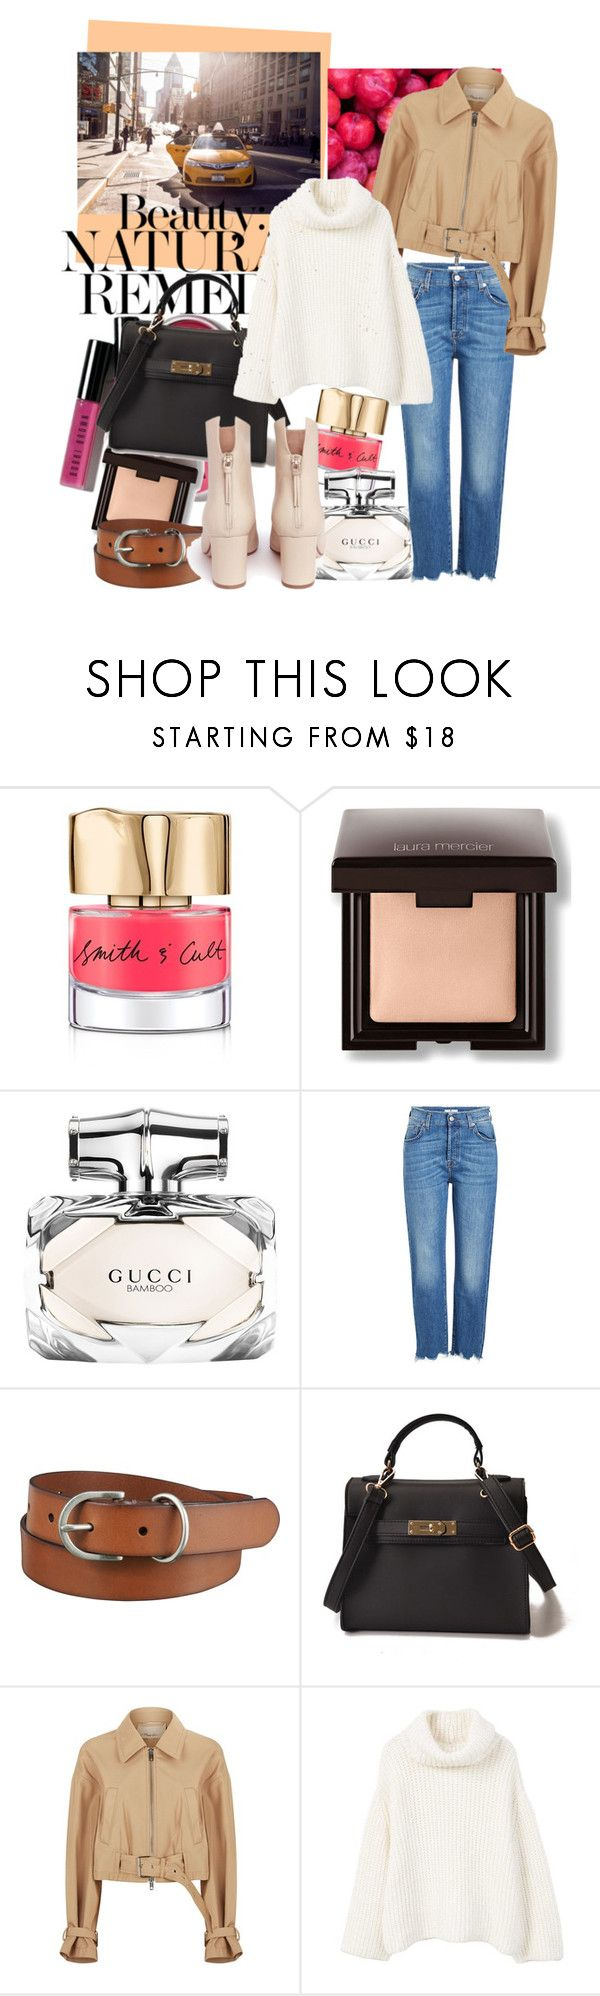 """Geen titel #32"" by mychicfashiondiary ❤ liked on Polyvore featuring Smith & Cult, Laura Mercier, Bohemia, Gucci, 7 For All Mankind, Uniqlo, 3.1 Phillip Lim, MANGO and Francesco Russo"